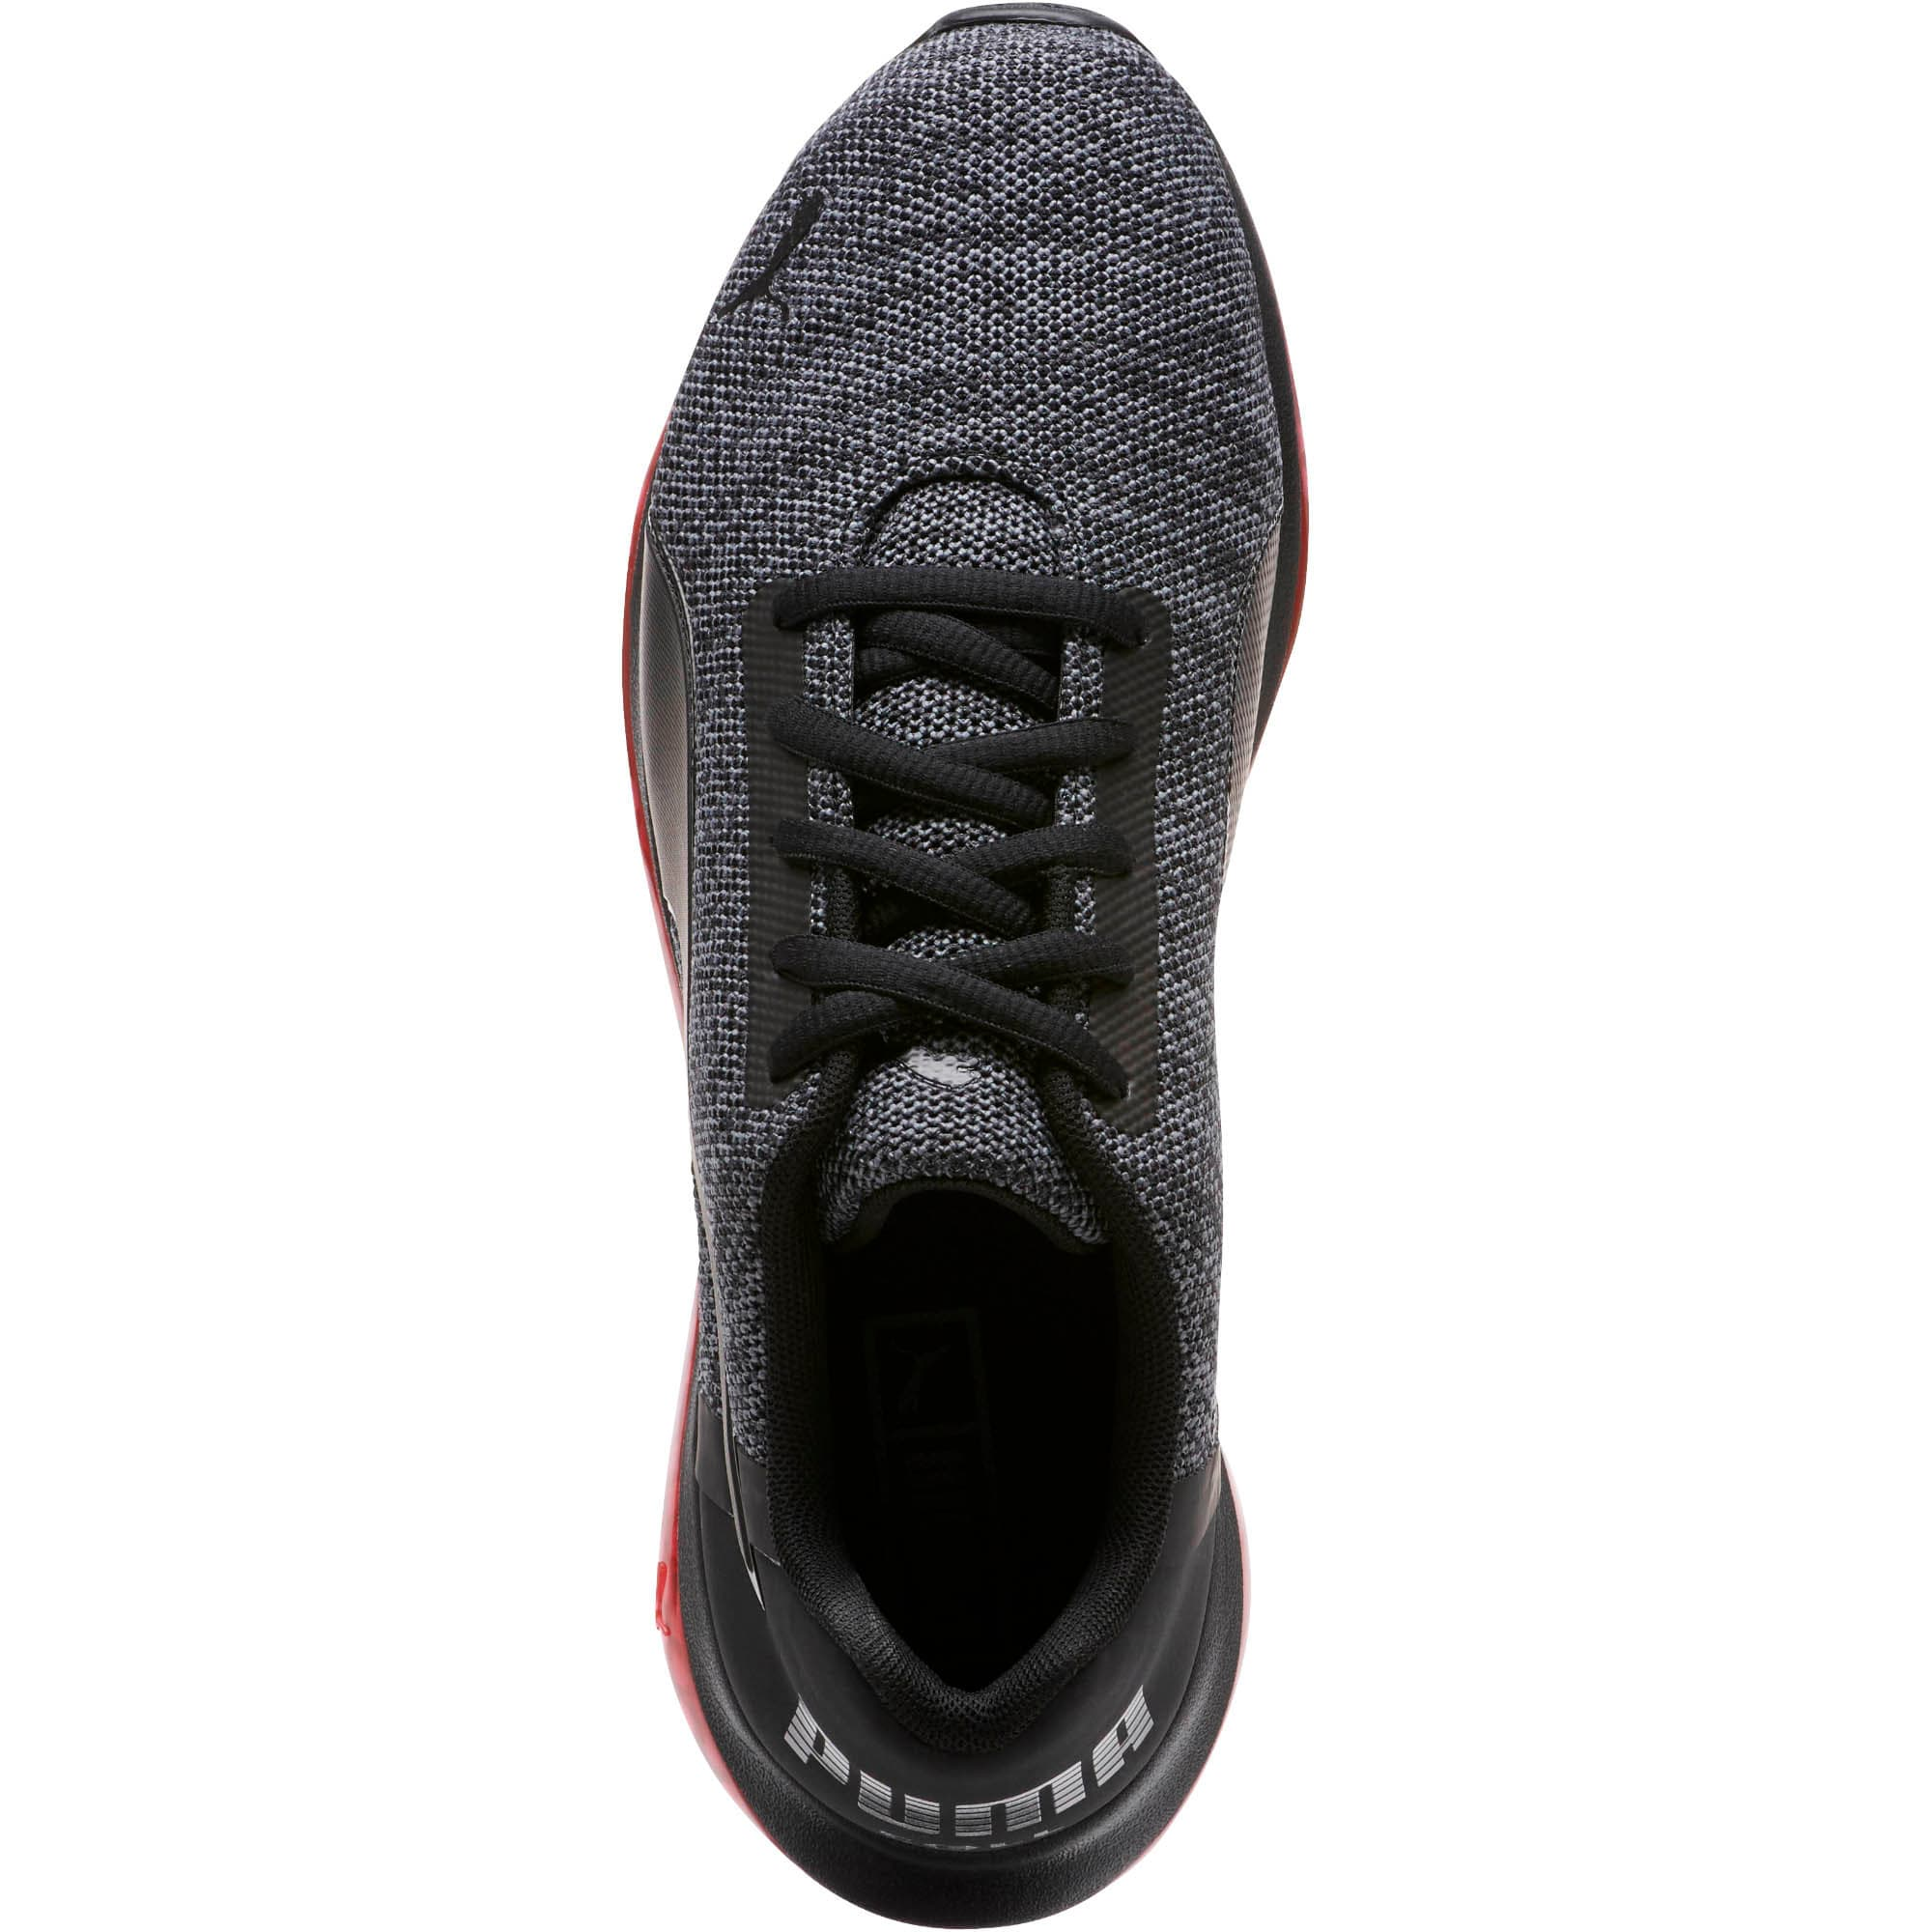 Thumbnail 6 of CELL Ultimate Knit Training Shoes, Pma Blk-QUIET SHDE-Rbbon Red, medium